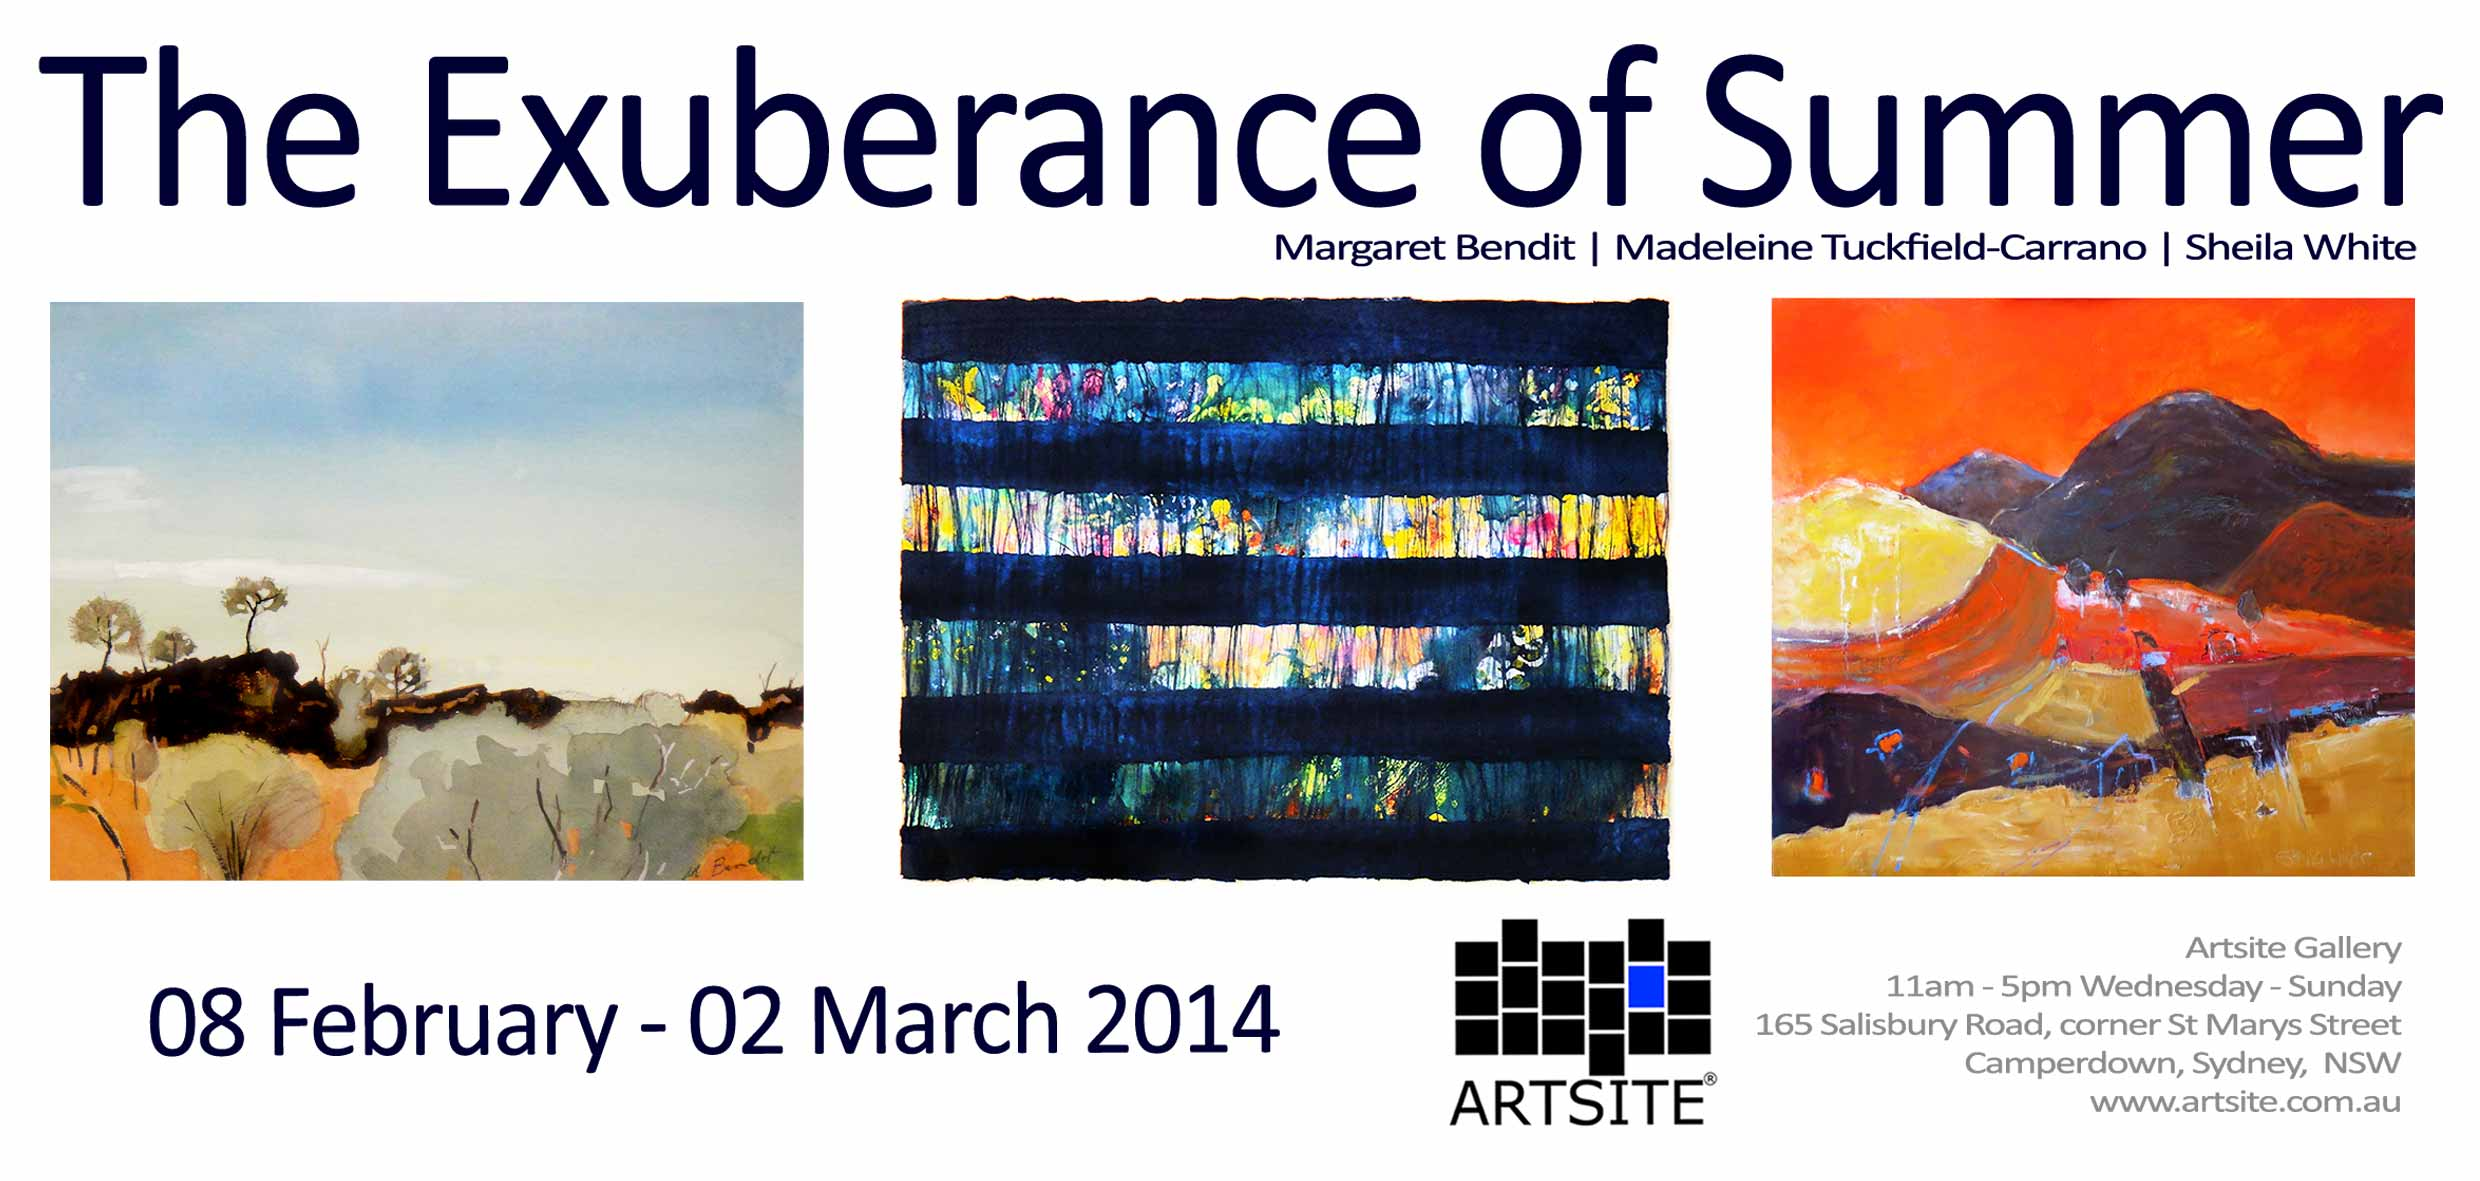 The Exuberance of Summer: Margaret Bendit | Madeleine Tuckfield-Carrano | Sheila White. Artsite Gallery 08 February - 02 March 2014